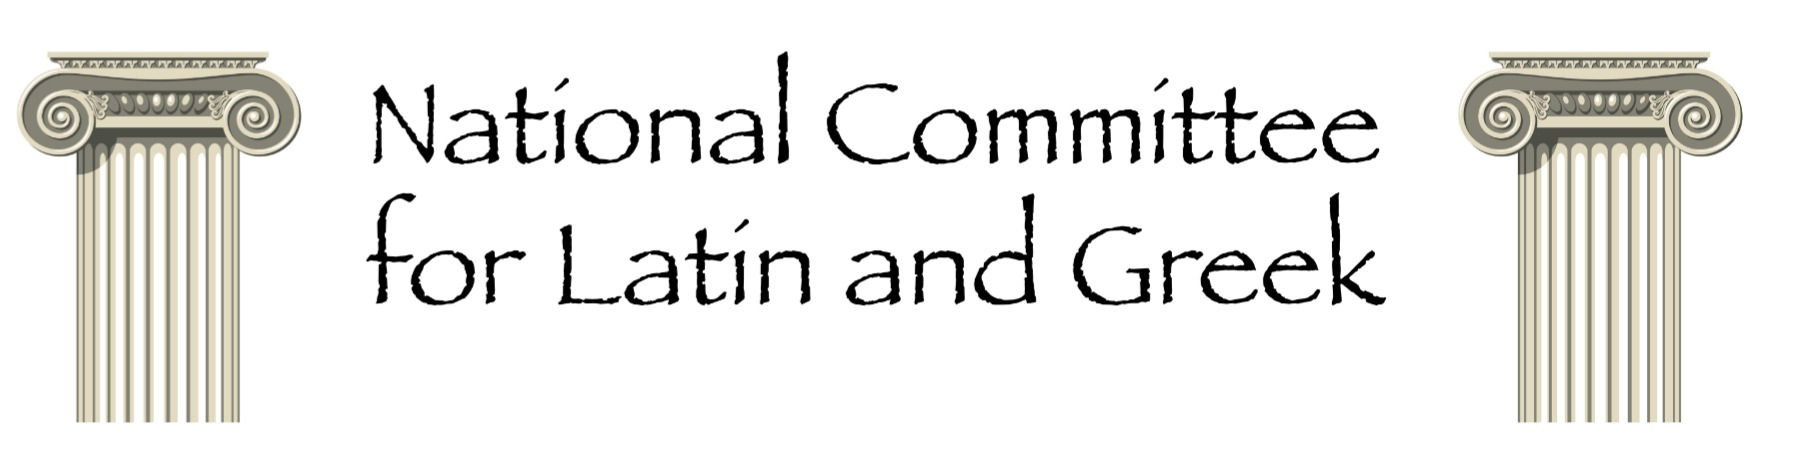 National Committee for Latin and Greek